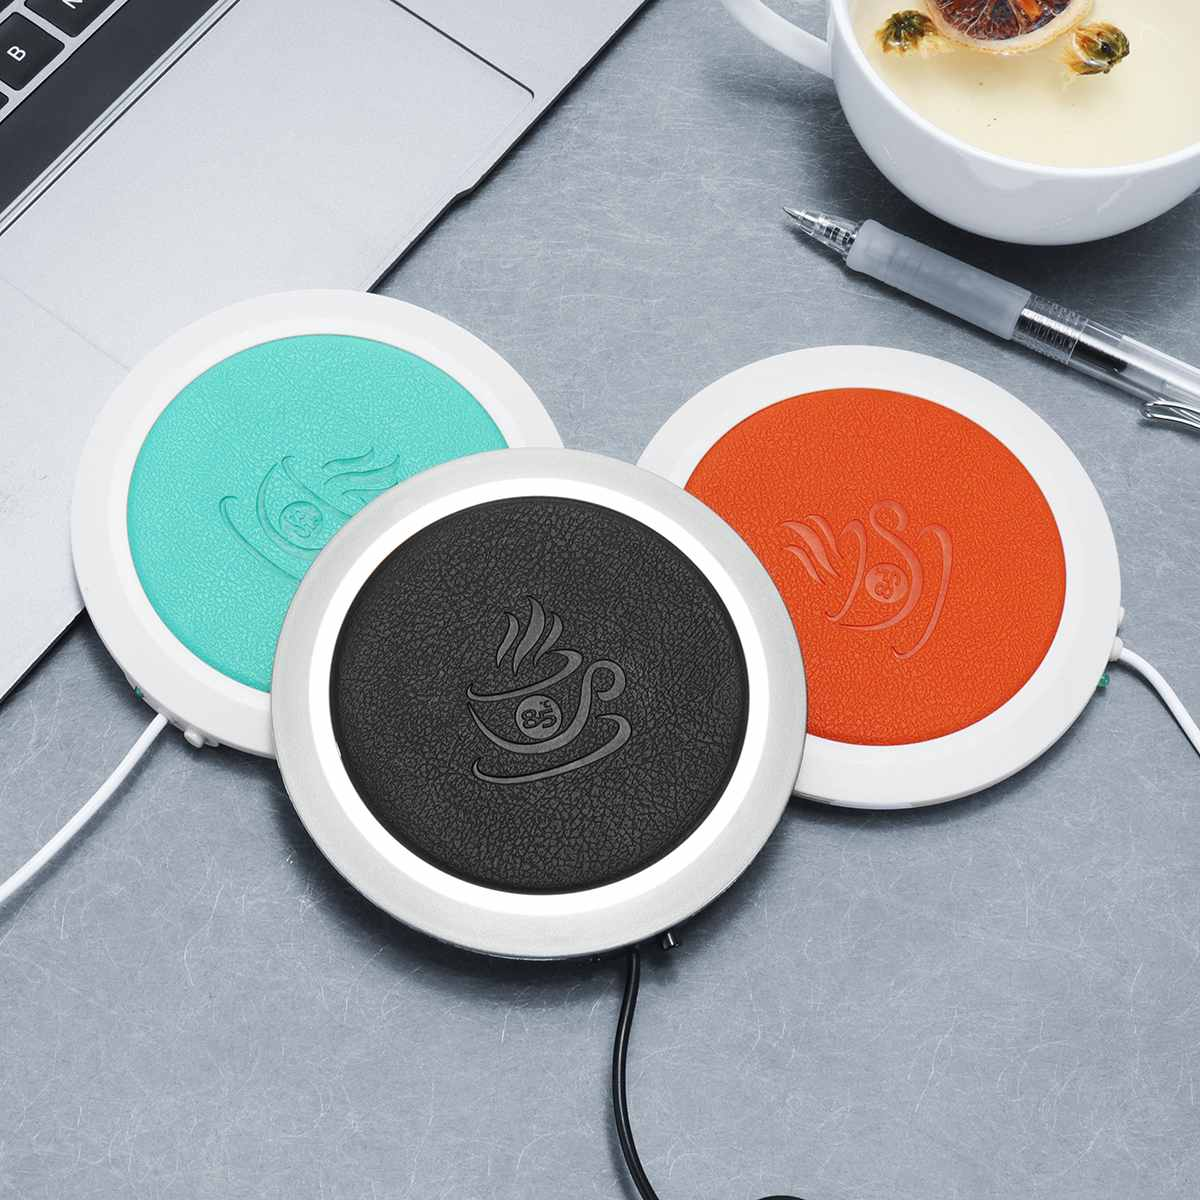 Warmtoo USB Insulation Heater Heat Insulation Electric Multifunction Coffee Cup Mug Mat Pad Home Useful Accessories